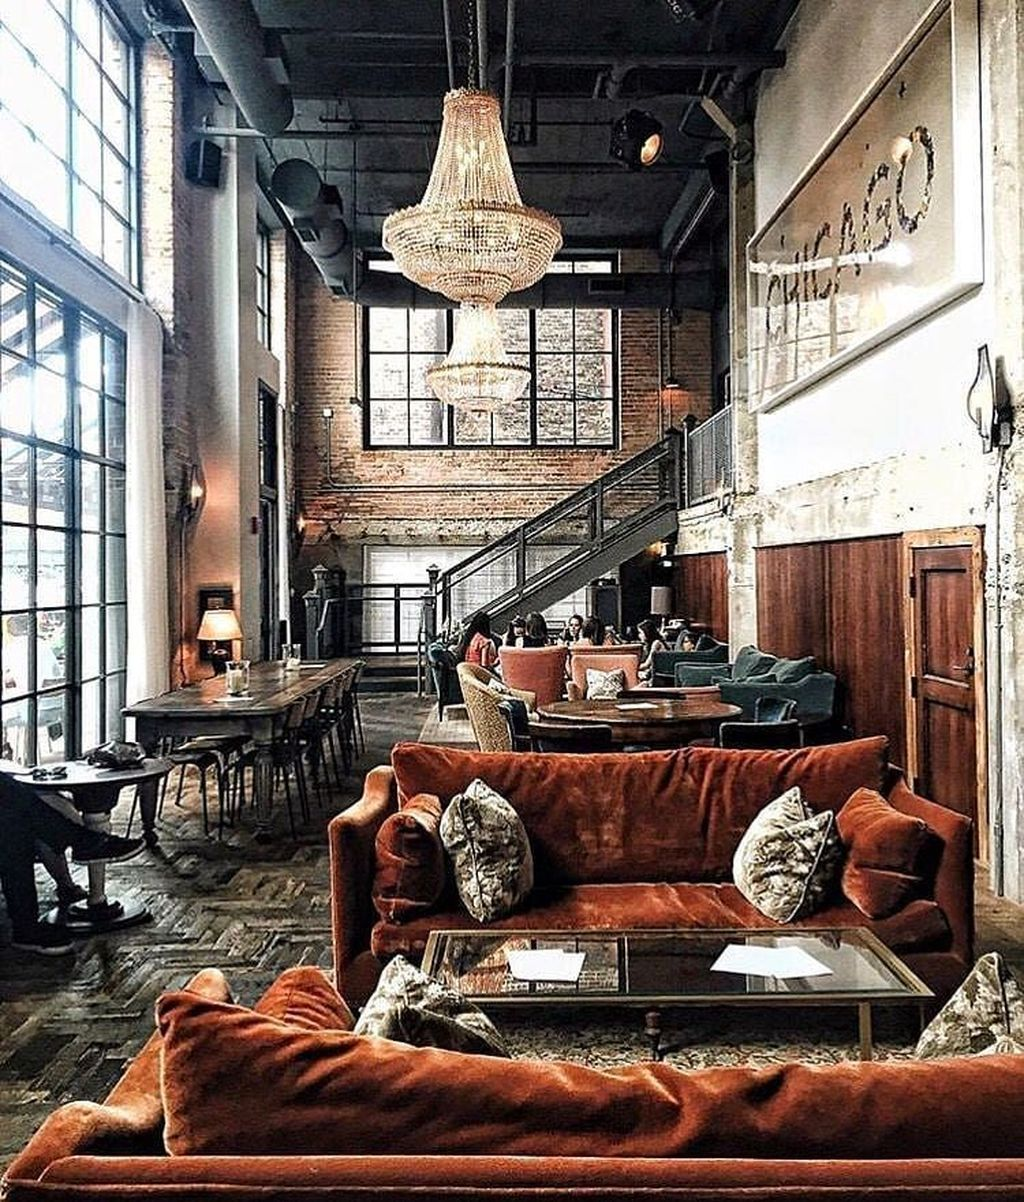 34 Nice Industrial Loft Decor Ideas For Your Interior Design With